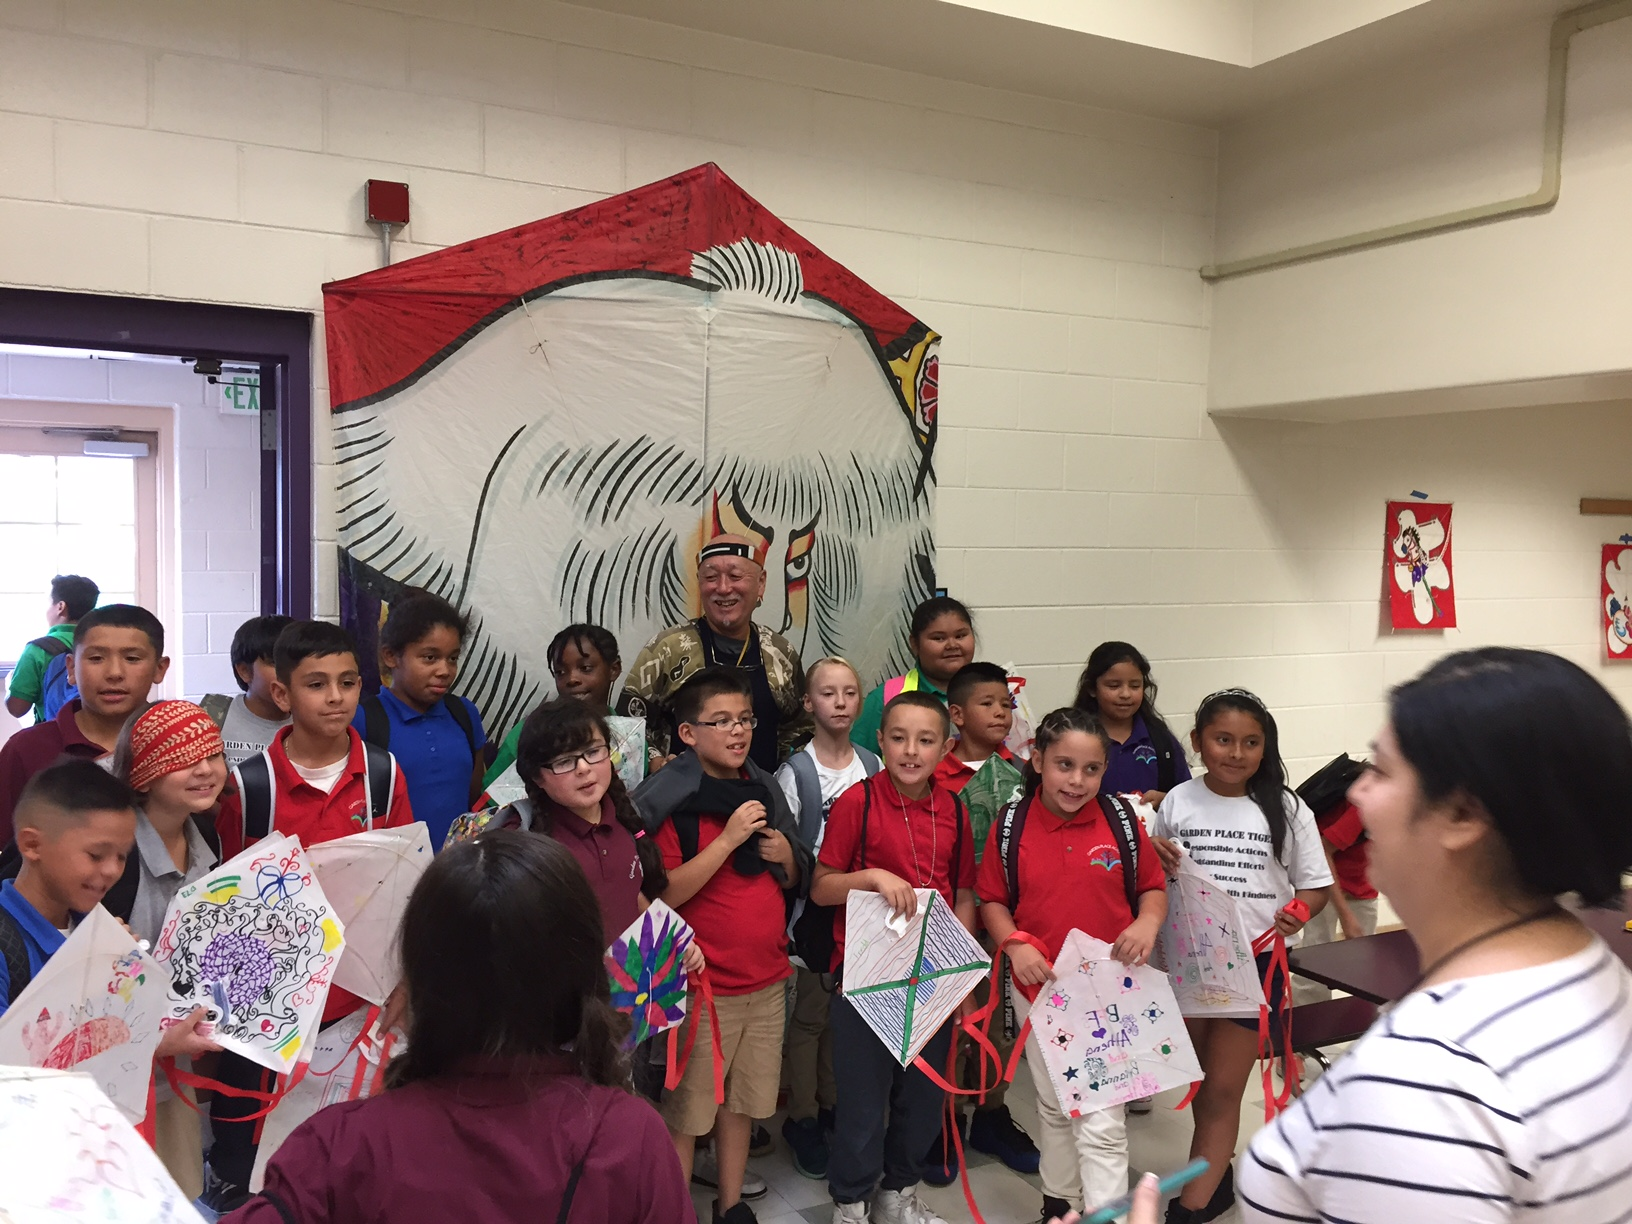 2016 Japanese Kite Making Workshops in Denver Public Schools